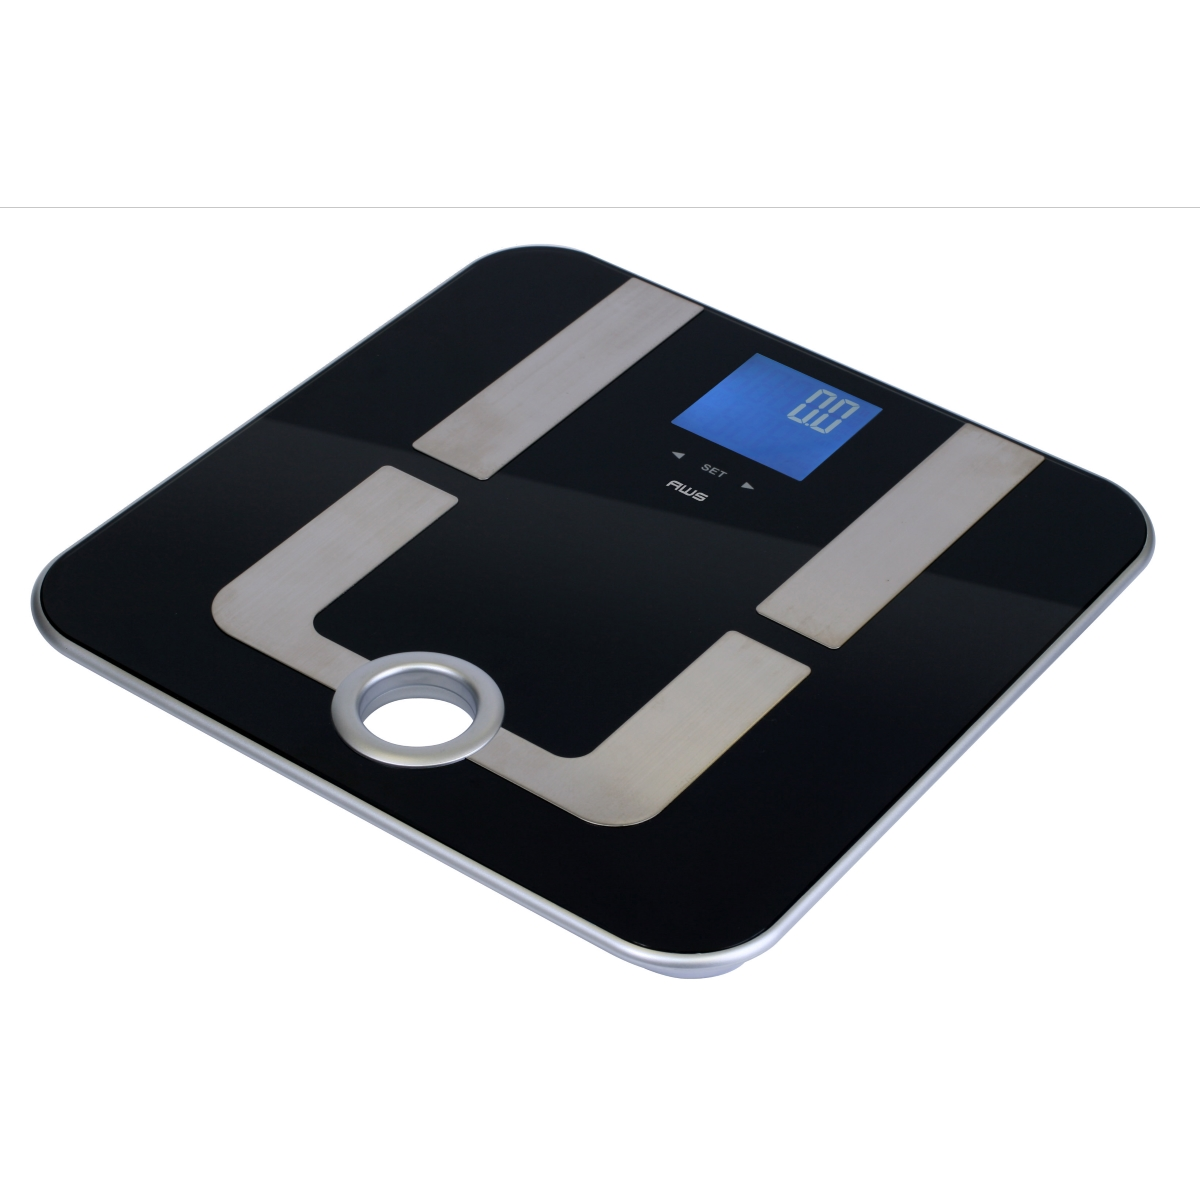 AWS MPR-180 Mercury Pro Body Fat Bath Scale 396lb x 0.2lb